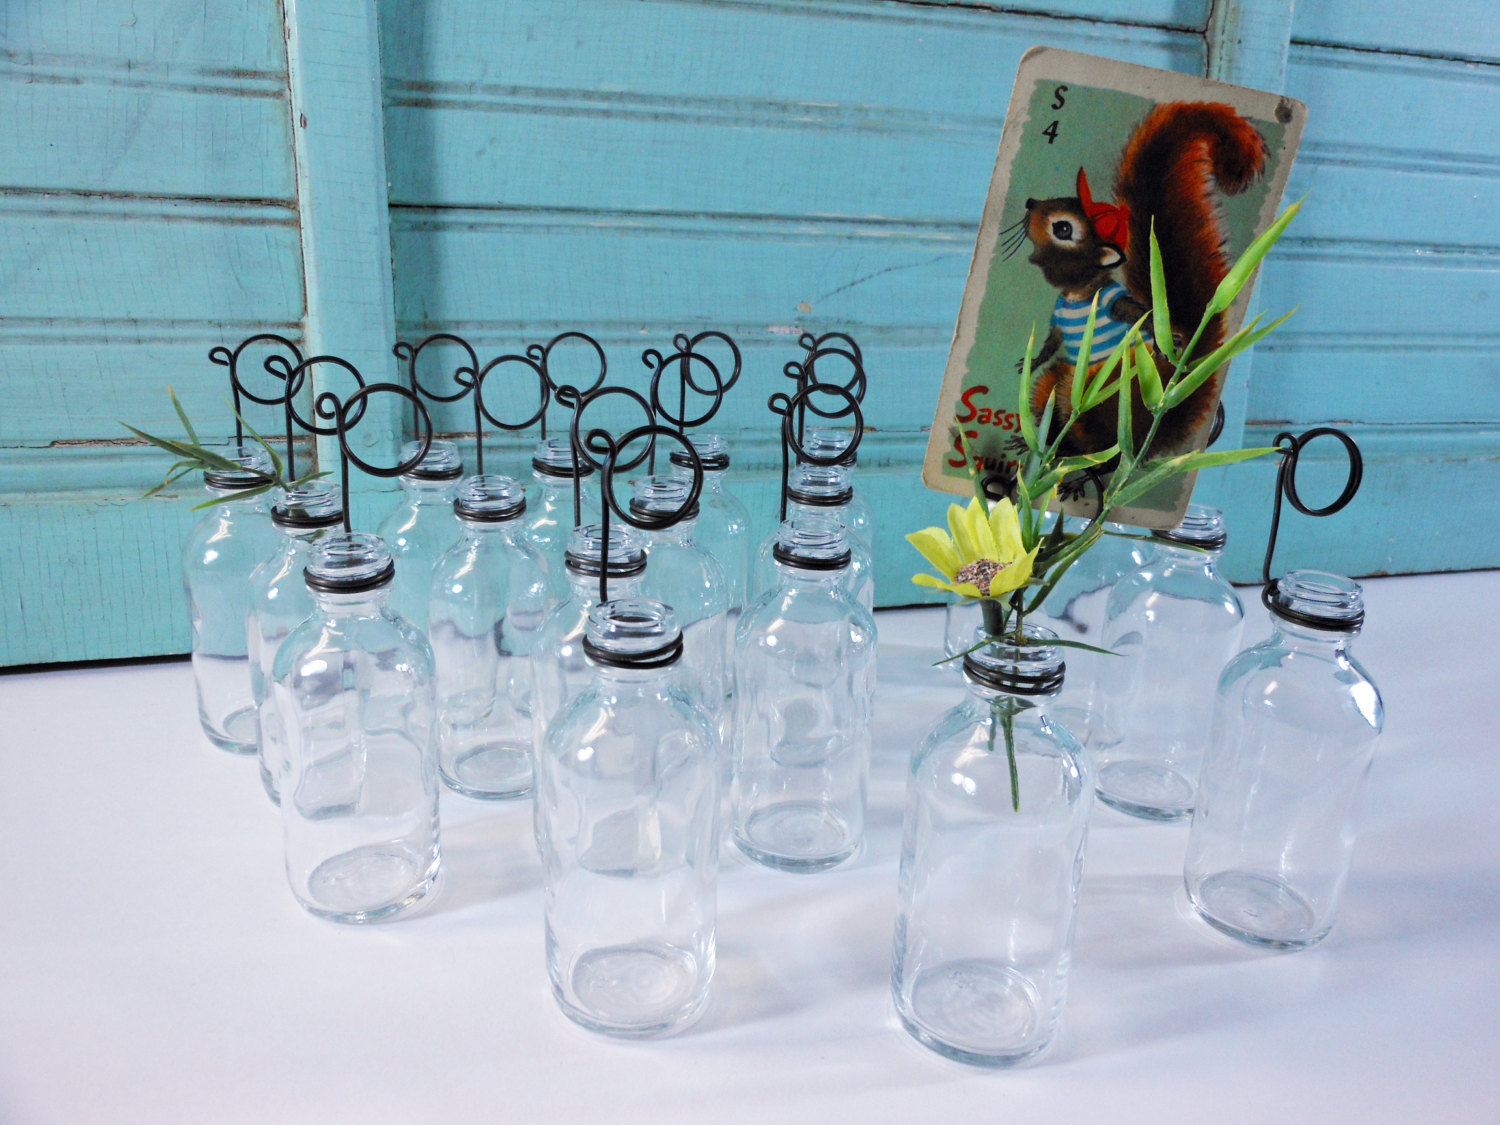 Twenty Clear Soda Glass Bottle Bud Vases and Photo Holders Place Card Holders